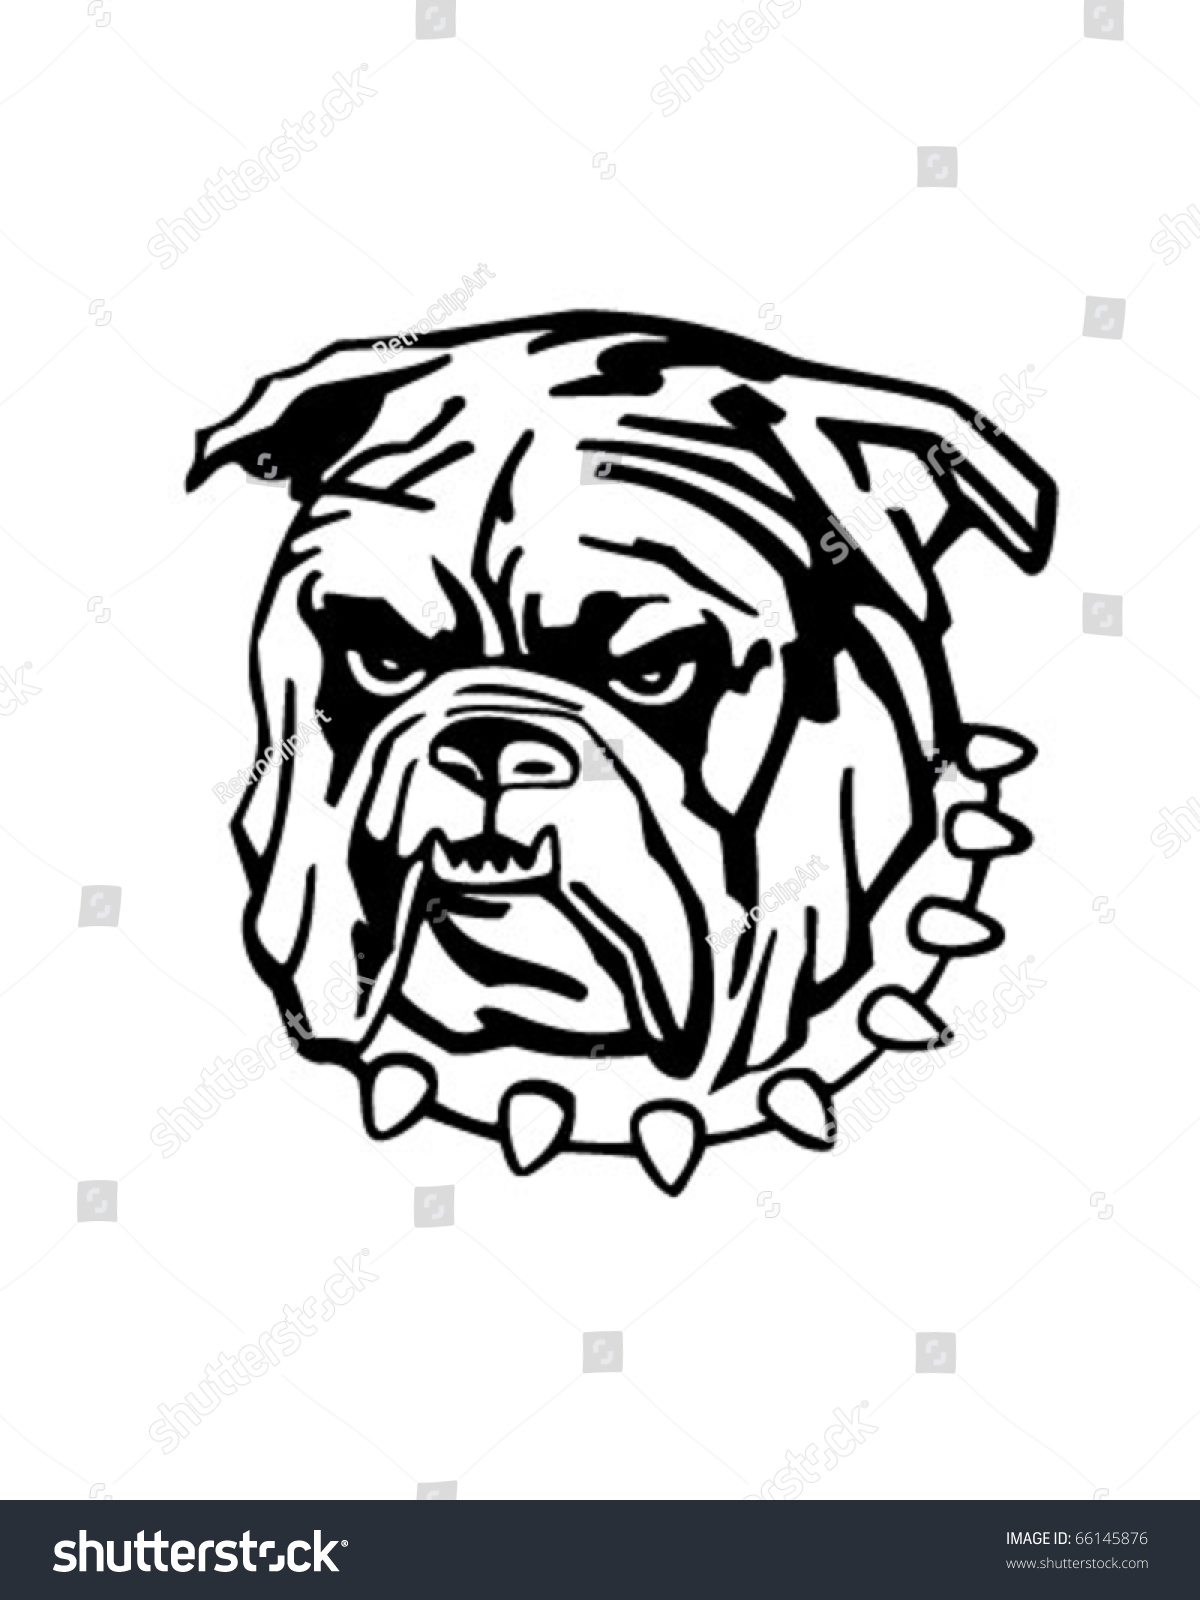 Mean Bulldog - Retro Clipart Illustration - 66145876 : Shutterstock